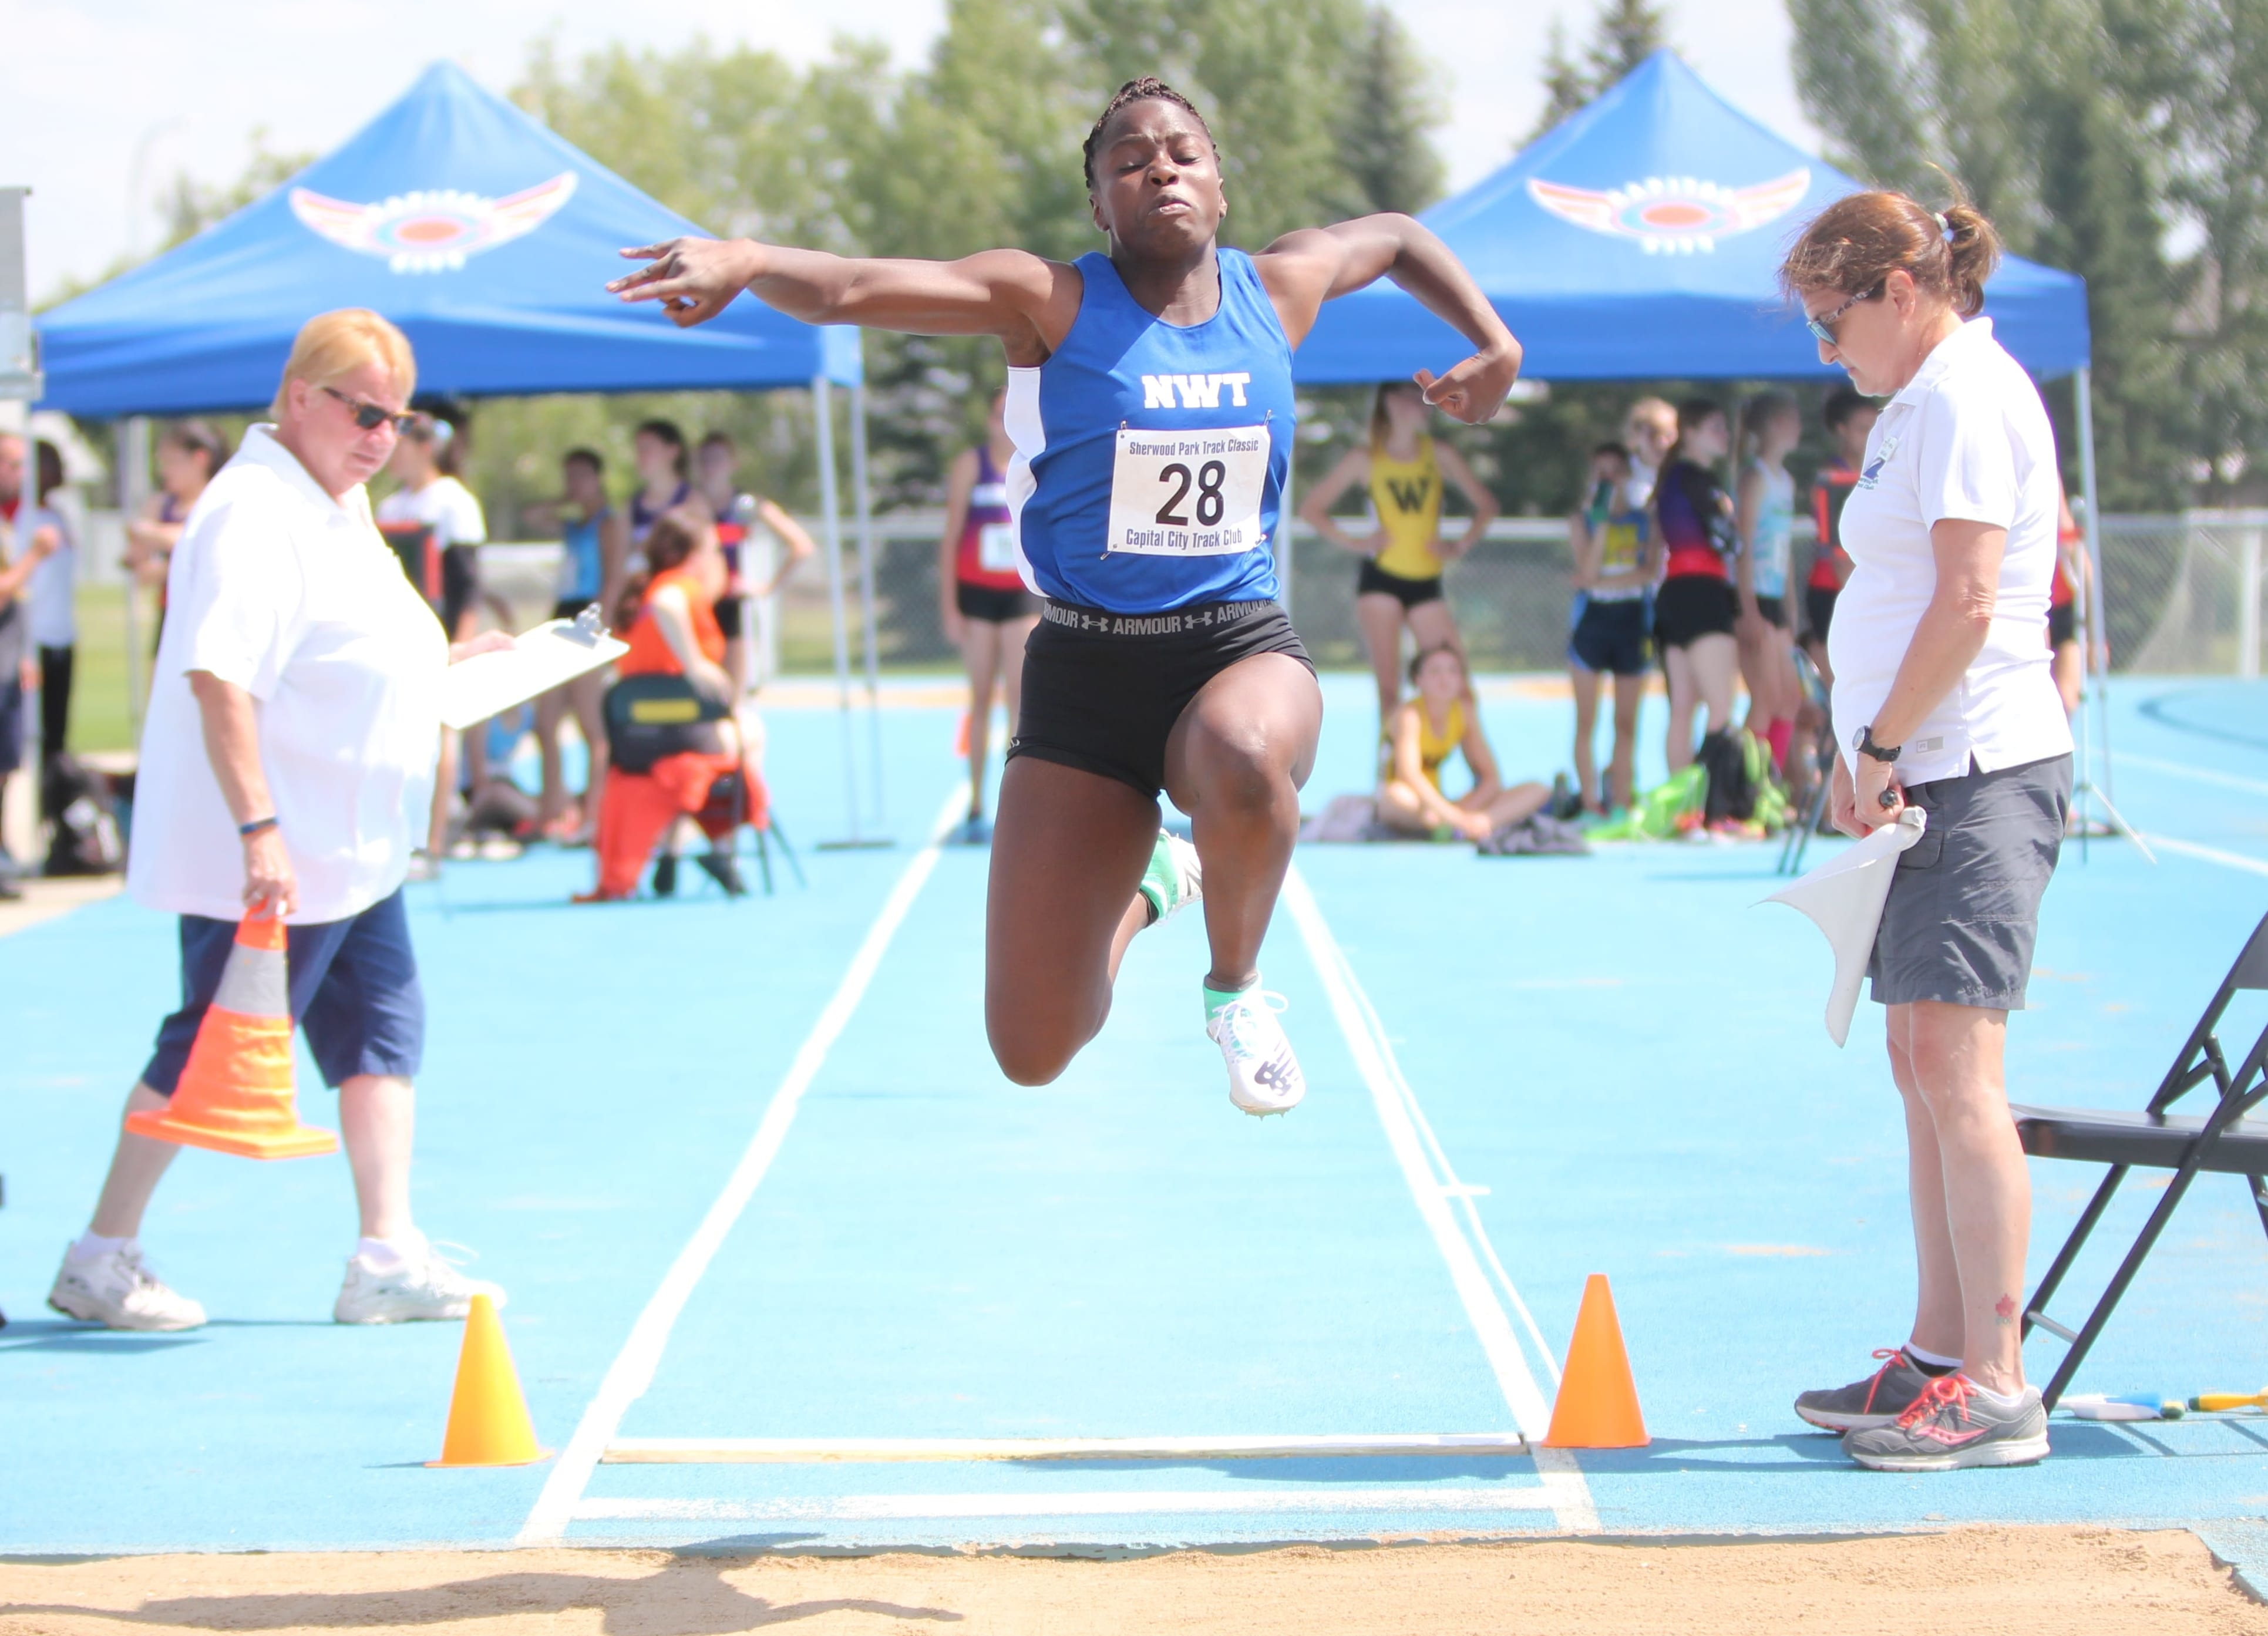 Crystal Kisakye, seen during the Sherwood Park Track Classic in Alberta last month, is part of the track and field team competing at the Western Canada Summer Games, which get going on Friday. photo courtesy of Rob Hart